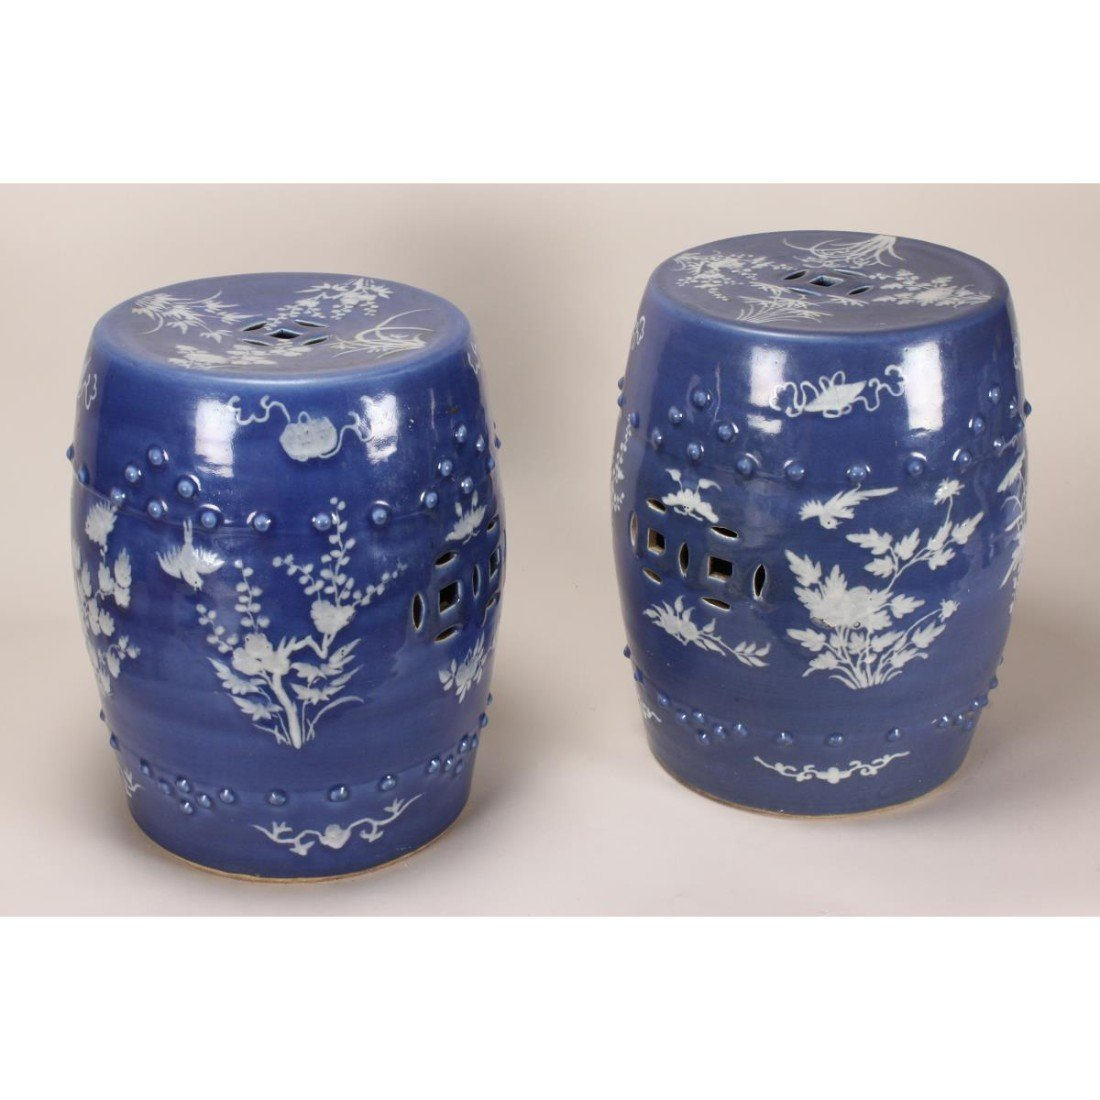 Pair of Chinese Blue and White Porcelain